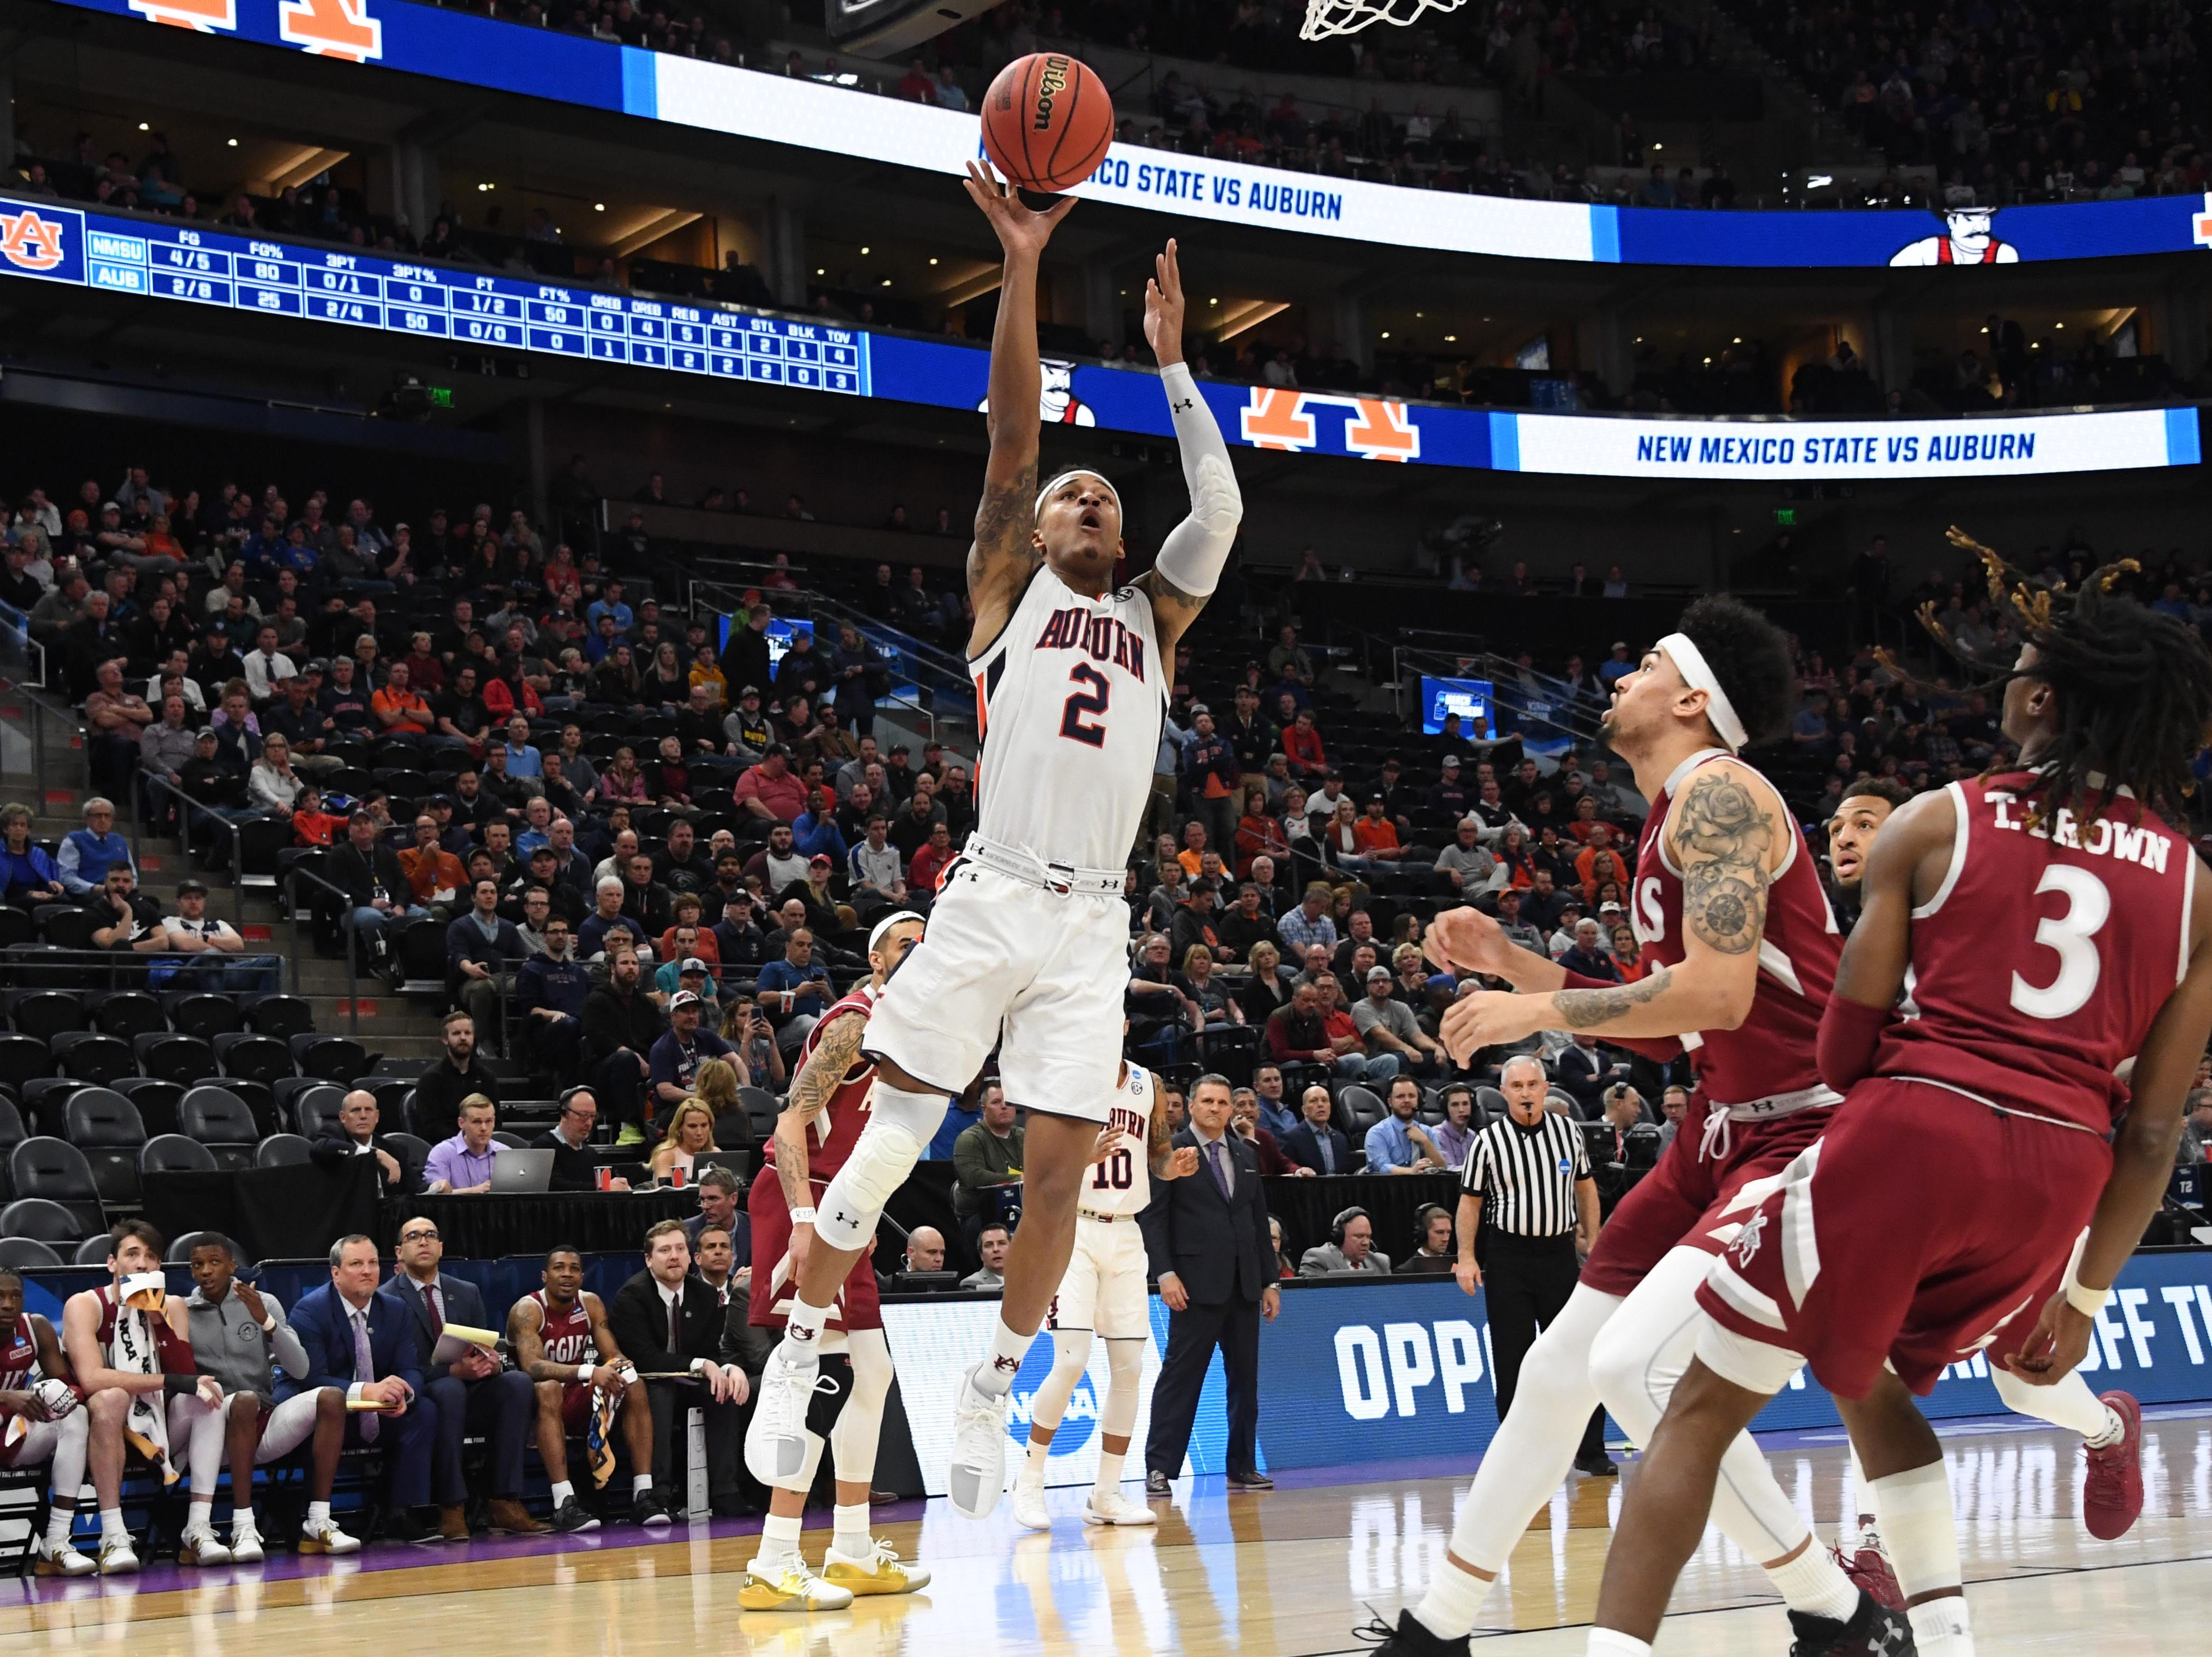 Mar 21, 2019; Salt Lake City, UT, USA; Auburn Tigers guard Bryce Brown (2) shoots during the first half in the first round of the 2019 NCAA Tournament against the New Mexico State Aggies at Vivint Smart Home Arena. Mandatory Credit: Kirby Lee-USA TODAY Sports